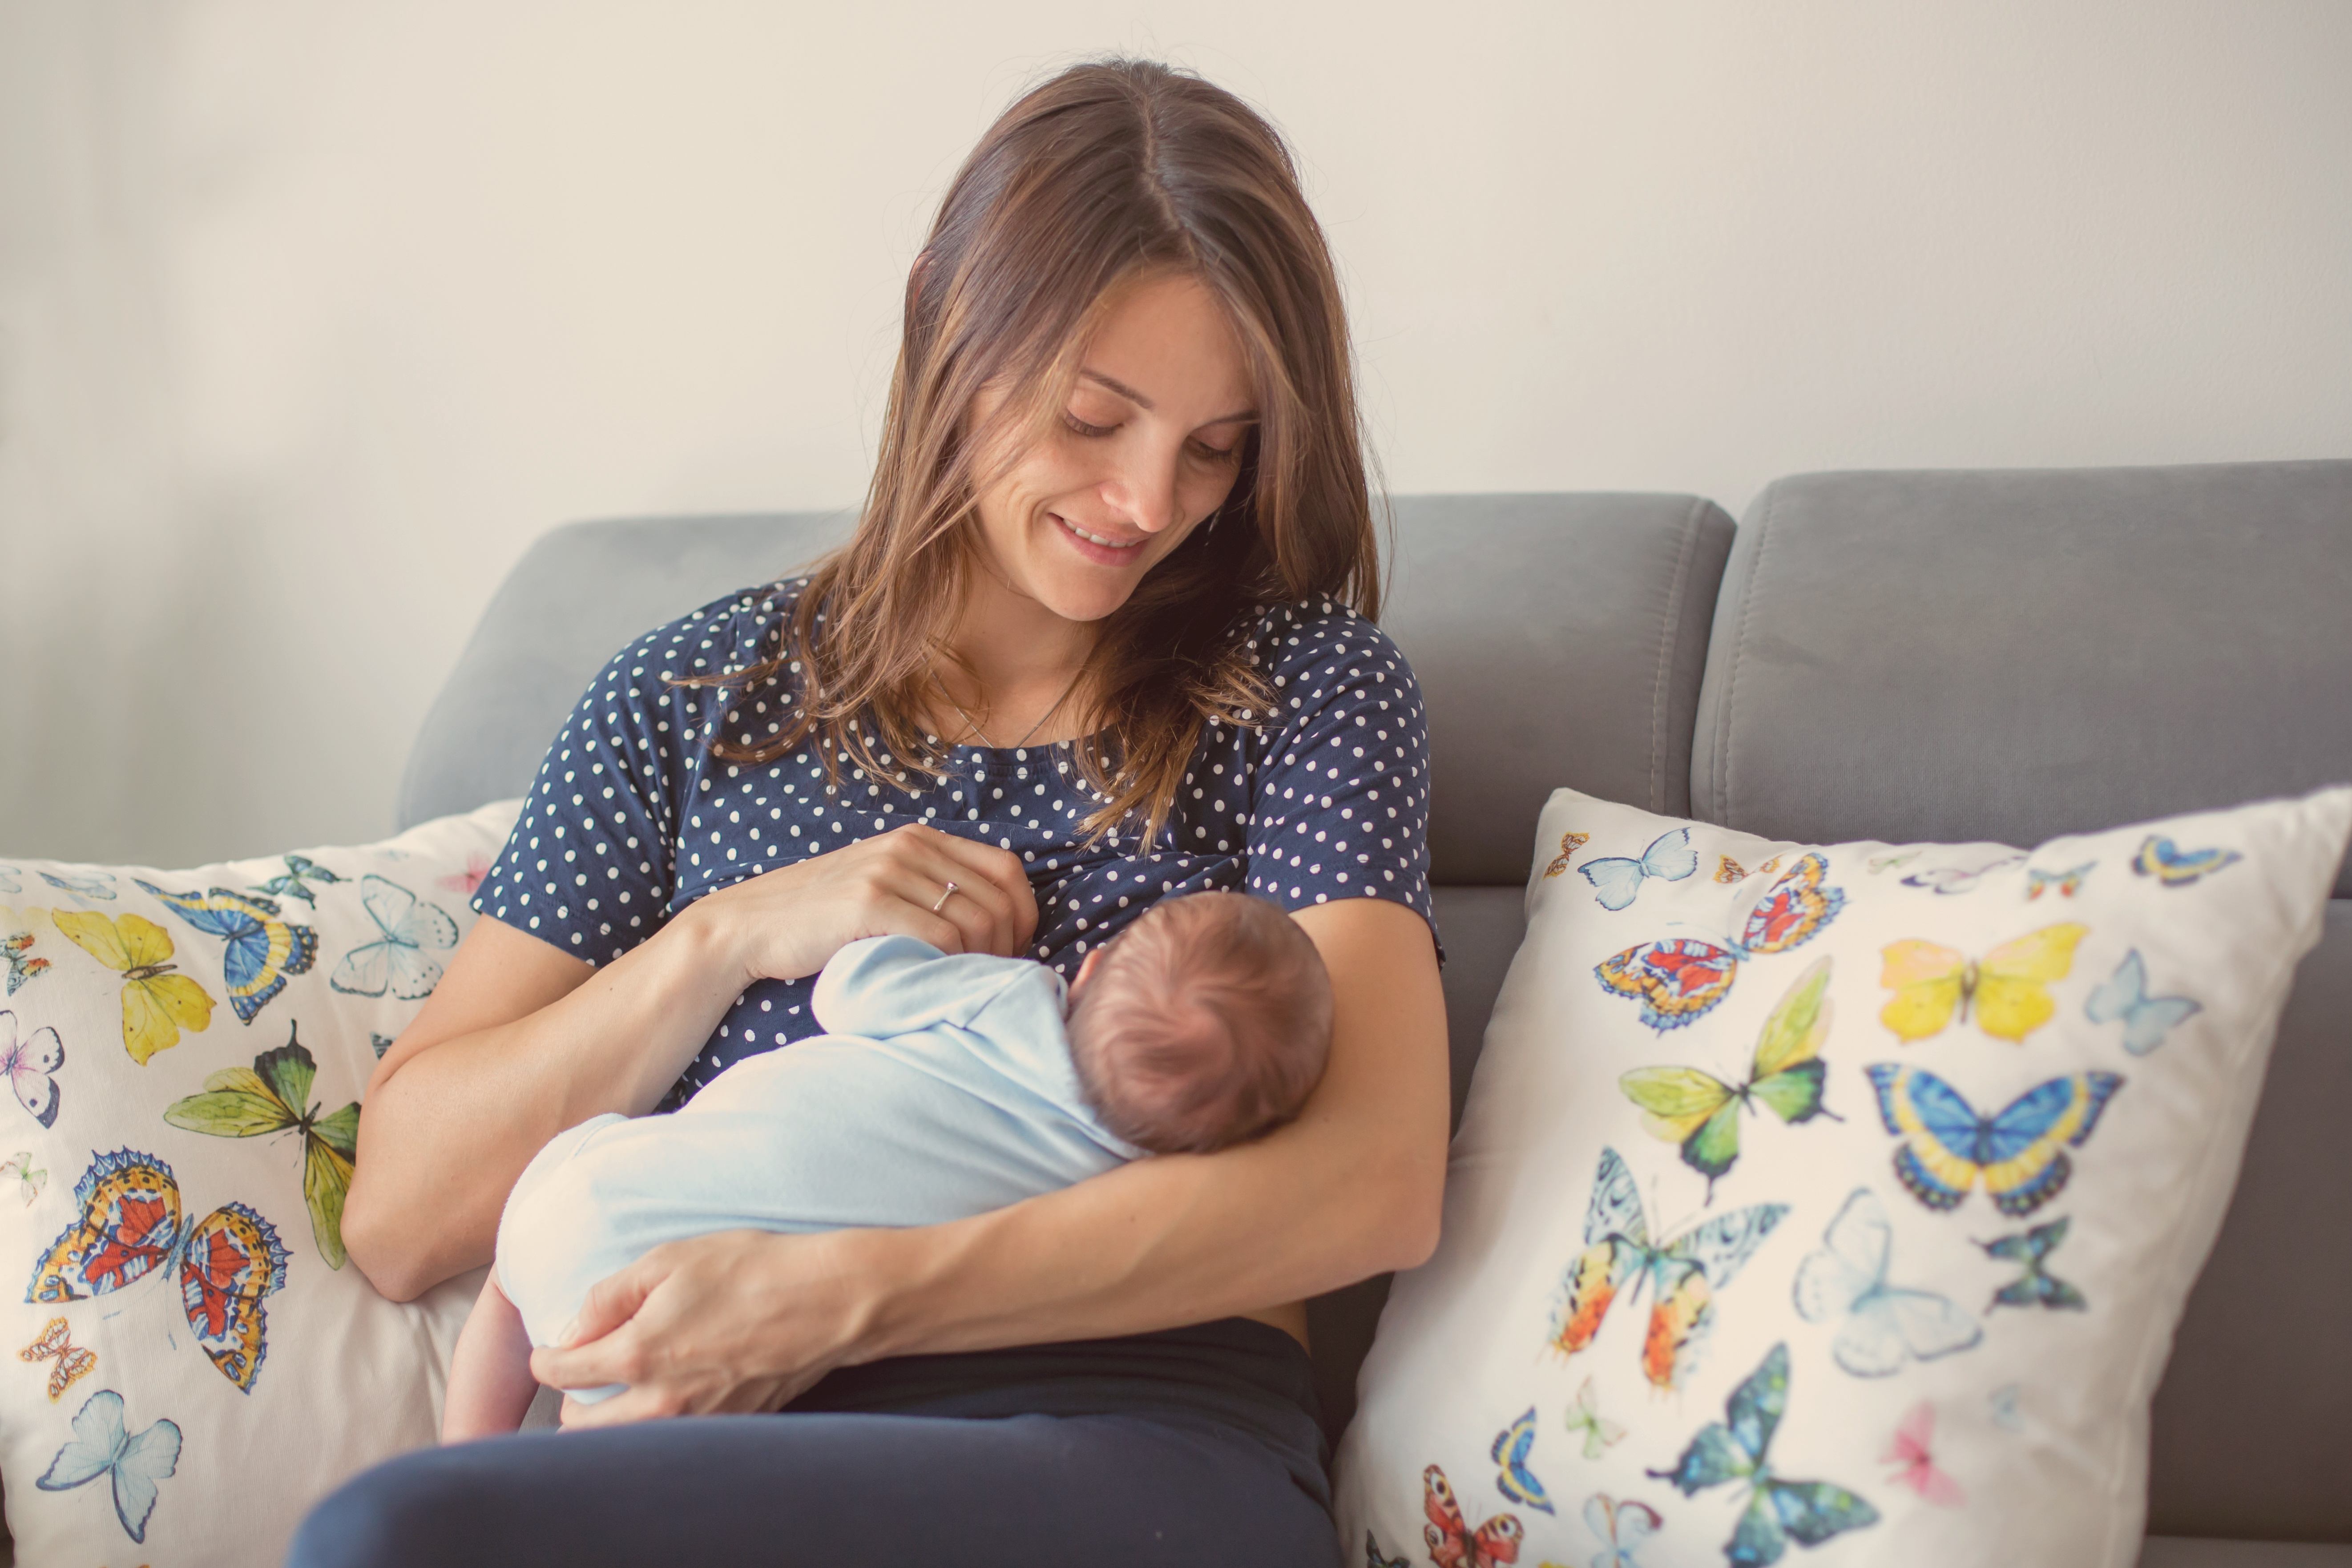 A mom preparing to breastfeed